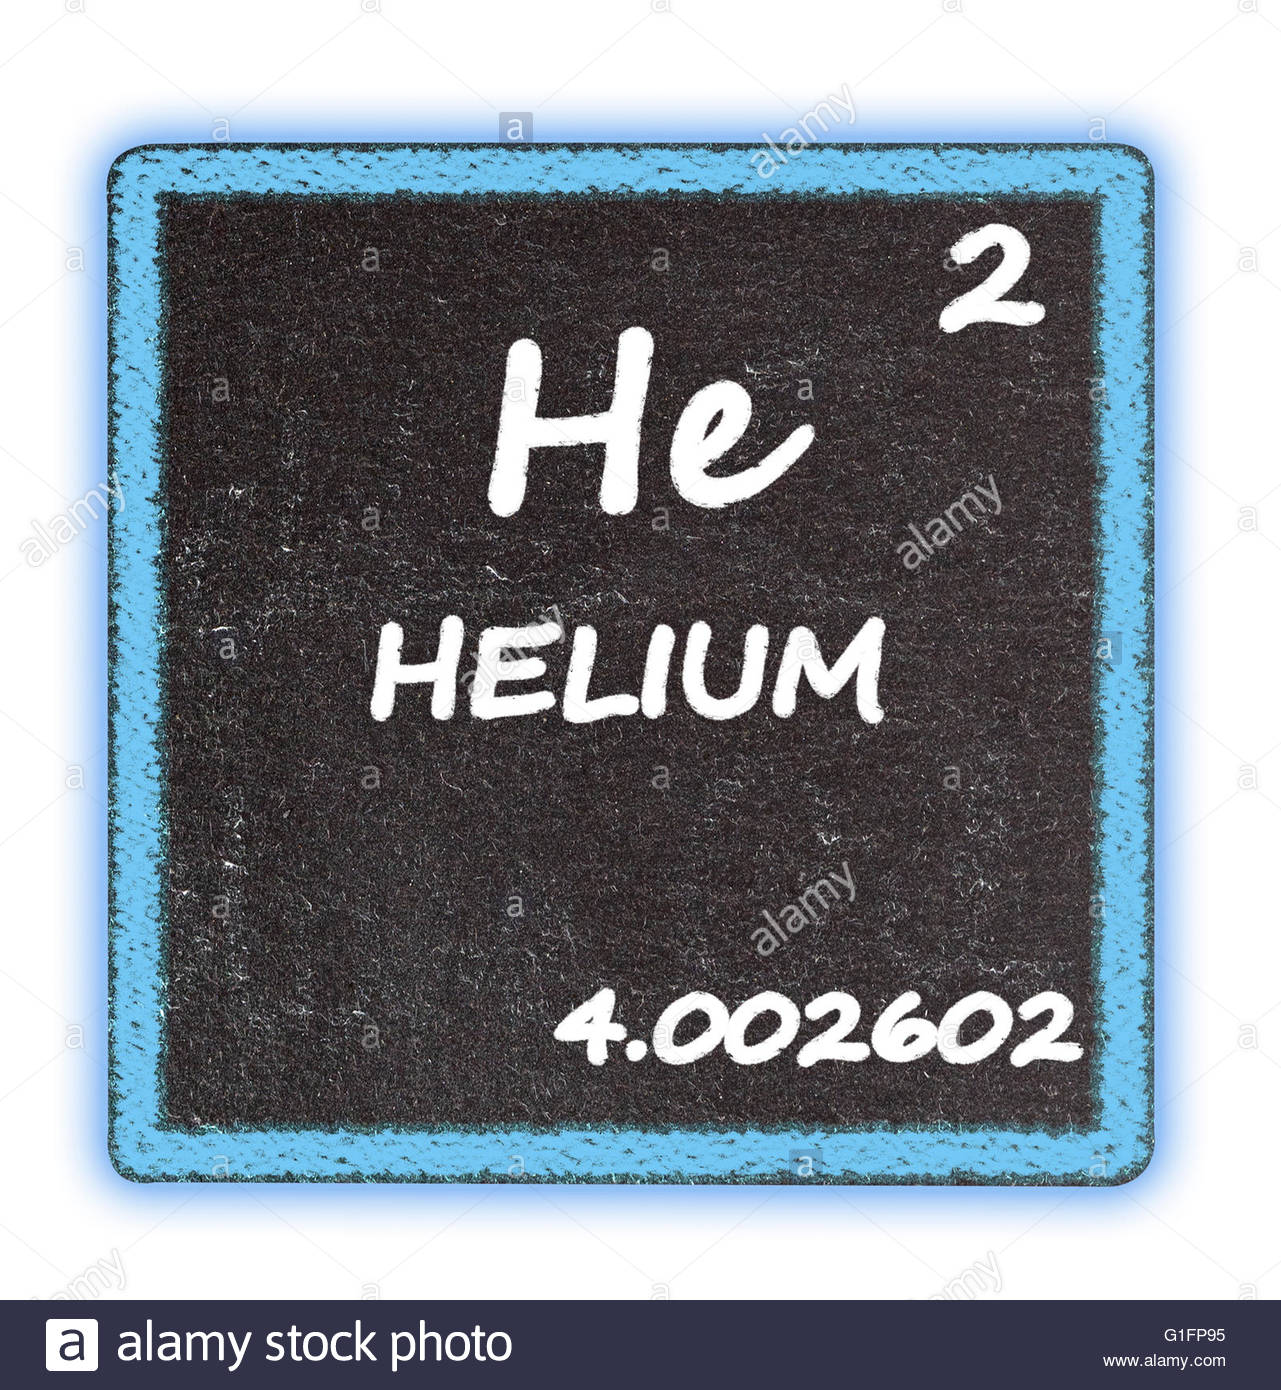 Helium symbol on periodic table images periodic table images helium on periodic table choice image periodic table images helium details from the periodic table stock gamestrikefo Images